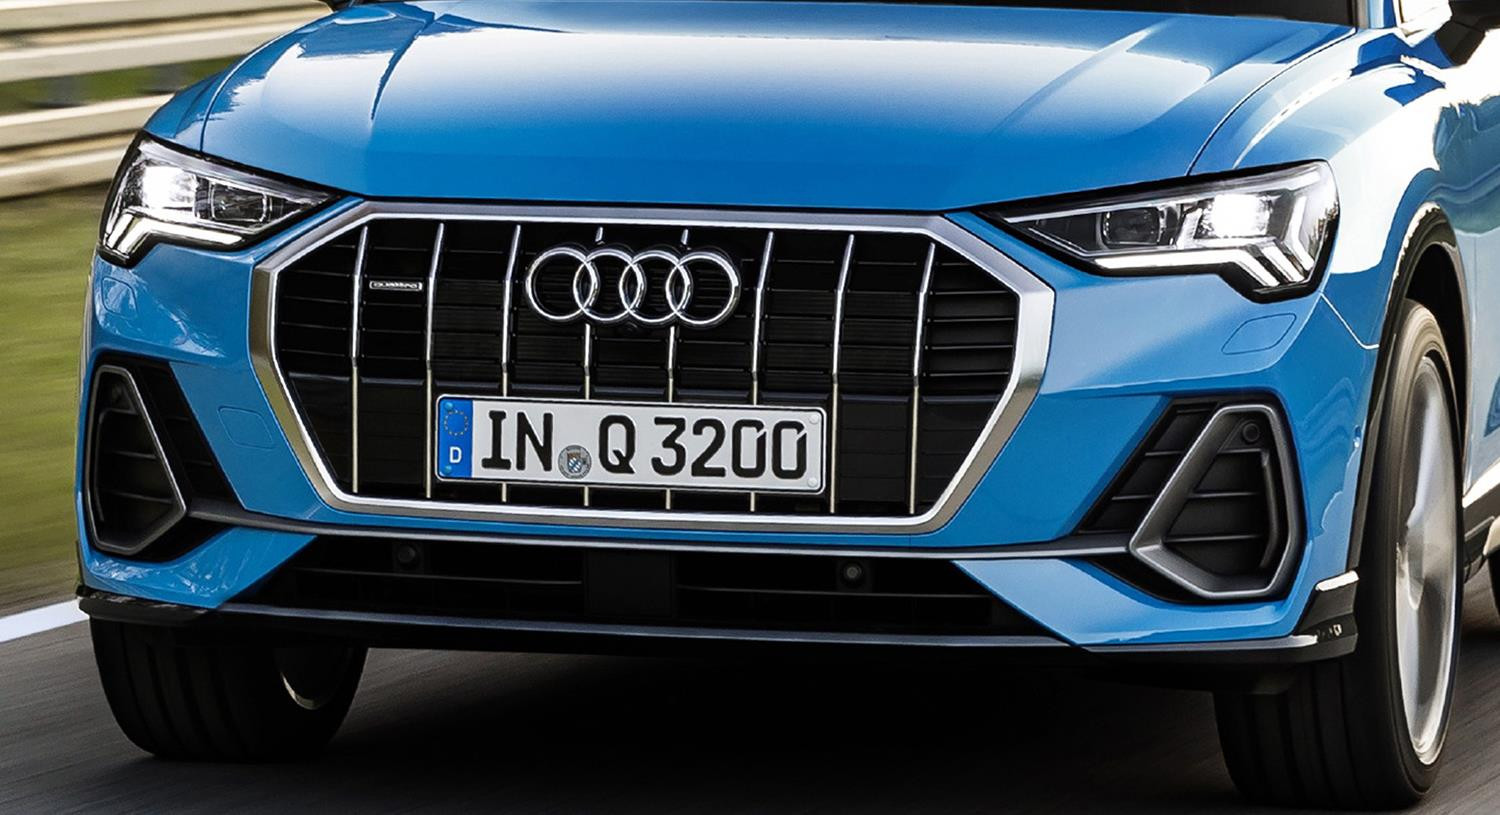 what's the new Audi Q3 like | Should I buy new Audi Q3